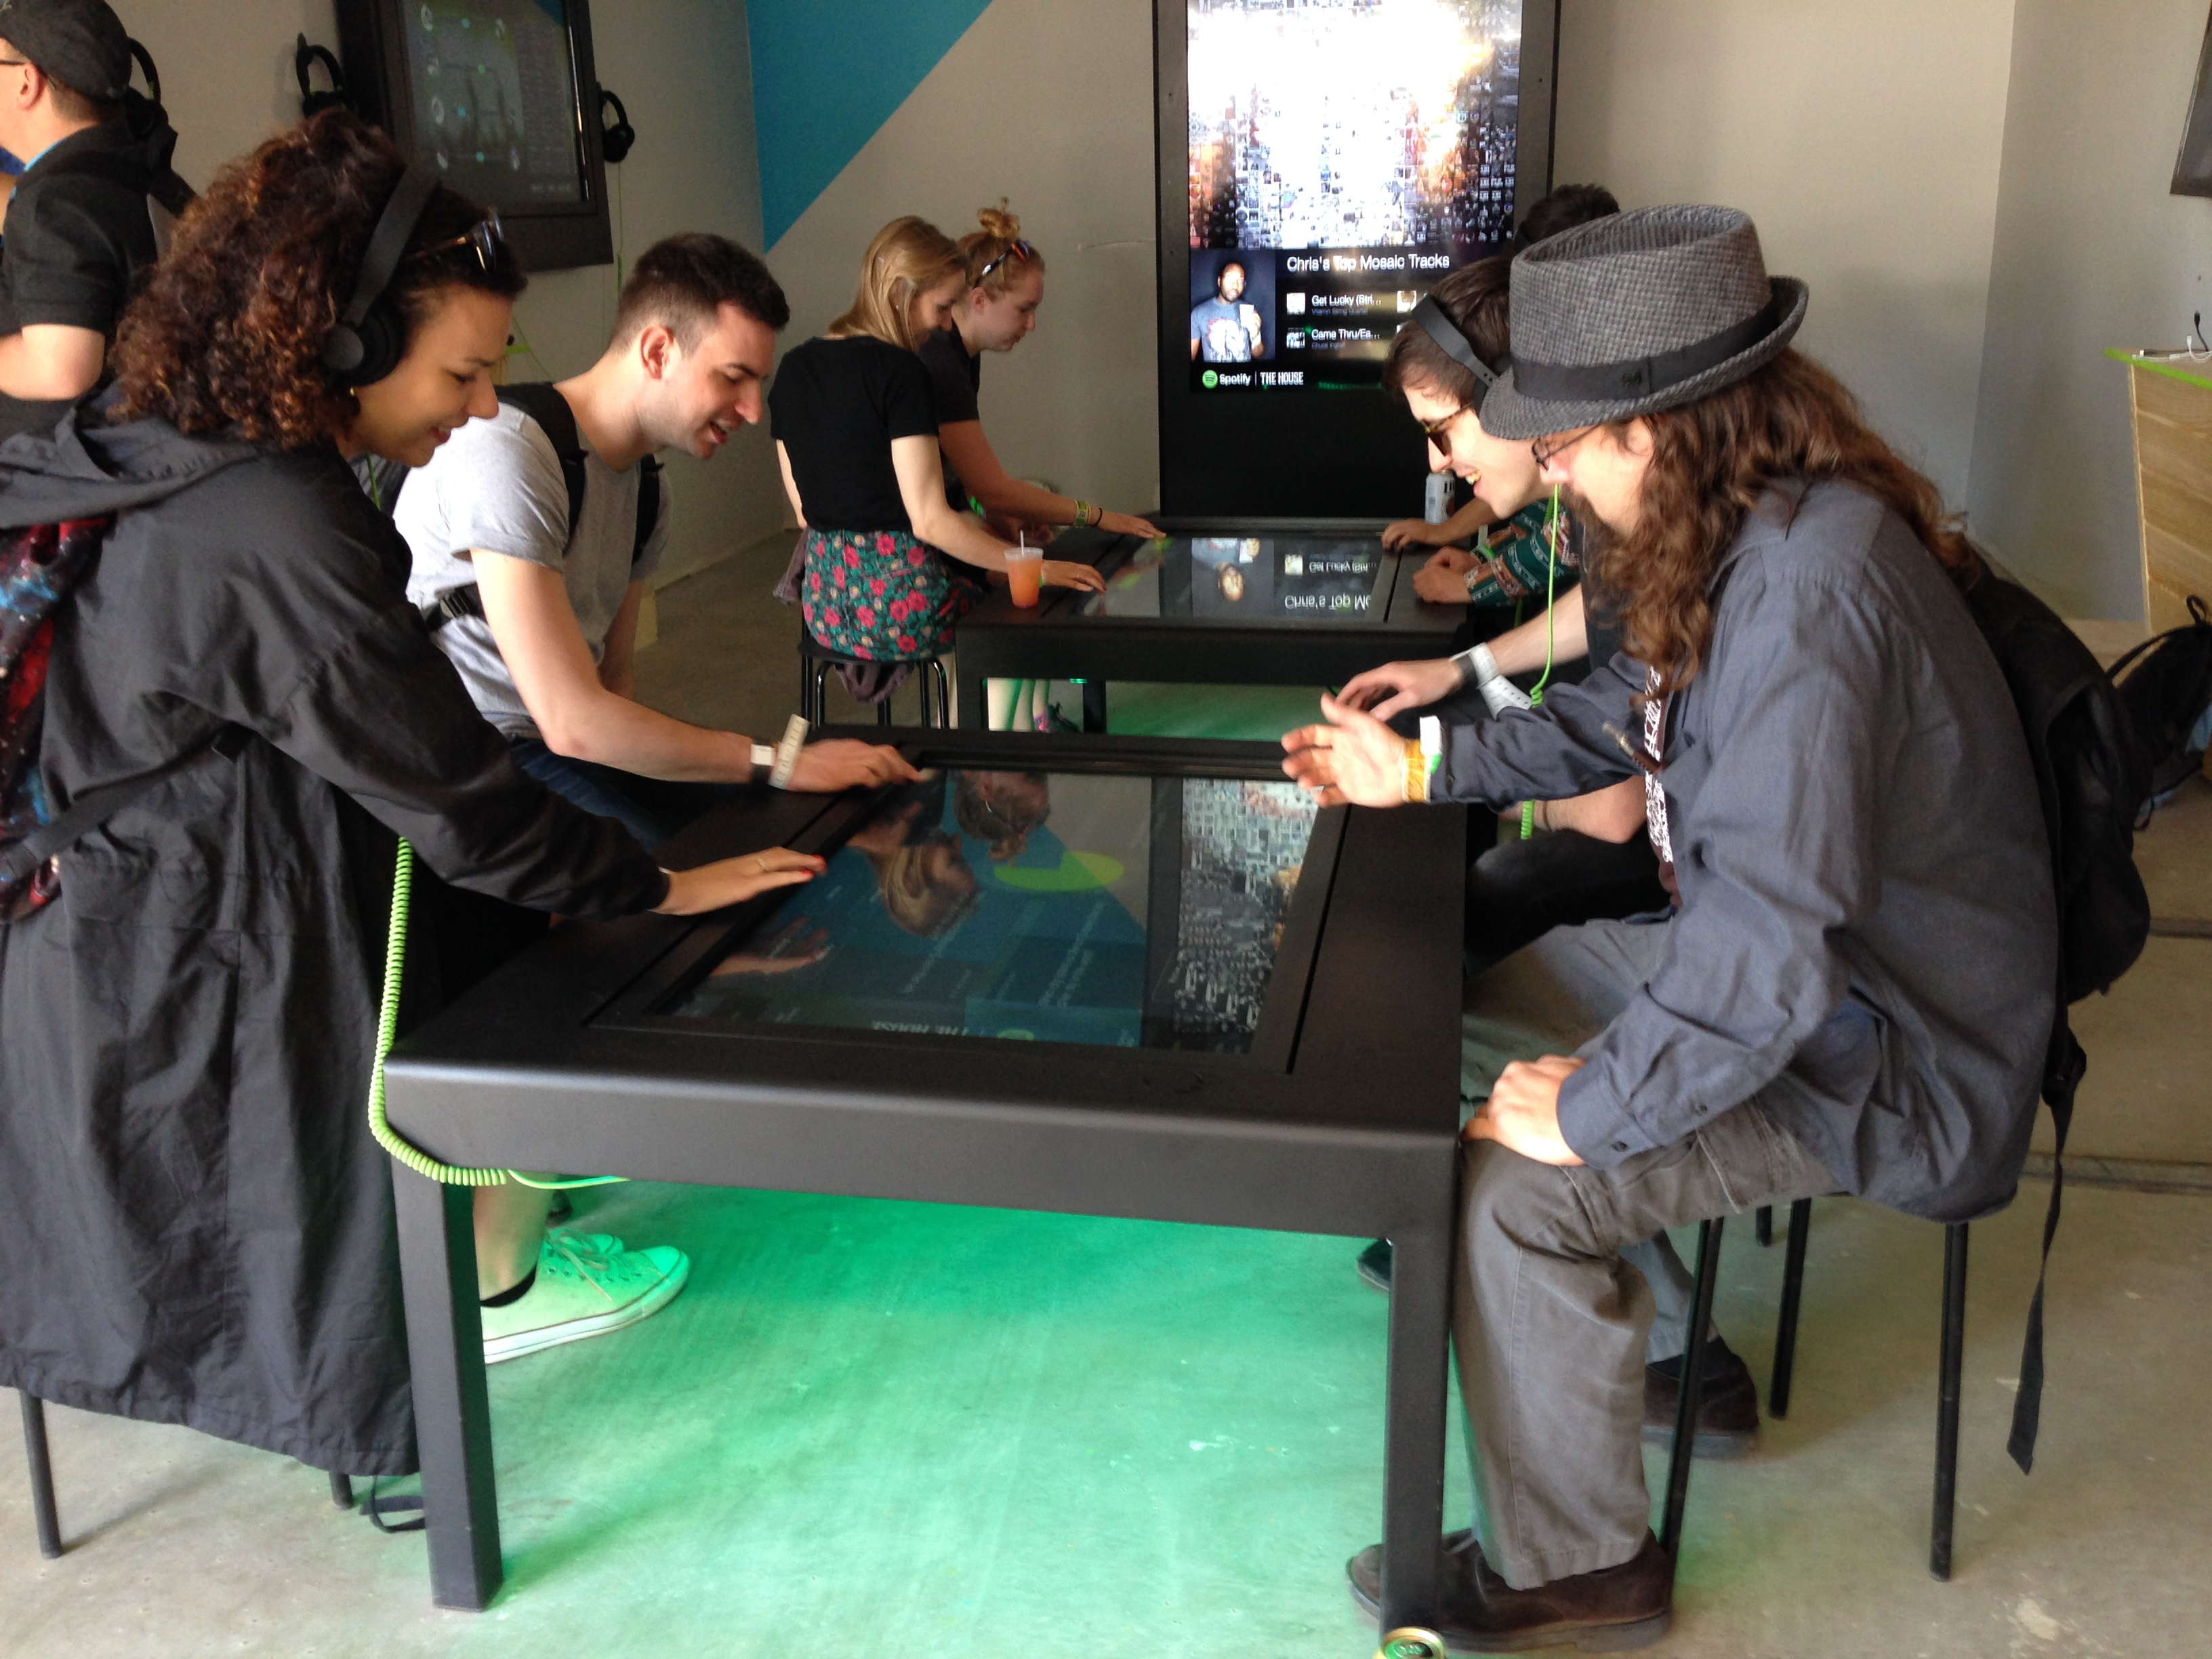 Spotify Exhibit Tradeshow Interactive Touch Table Multi-User by Horizon Display